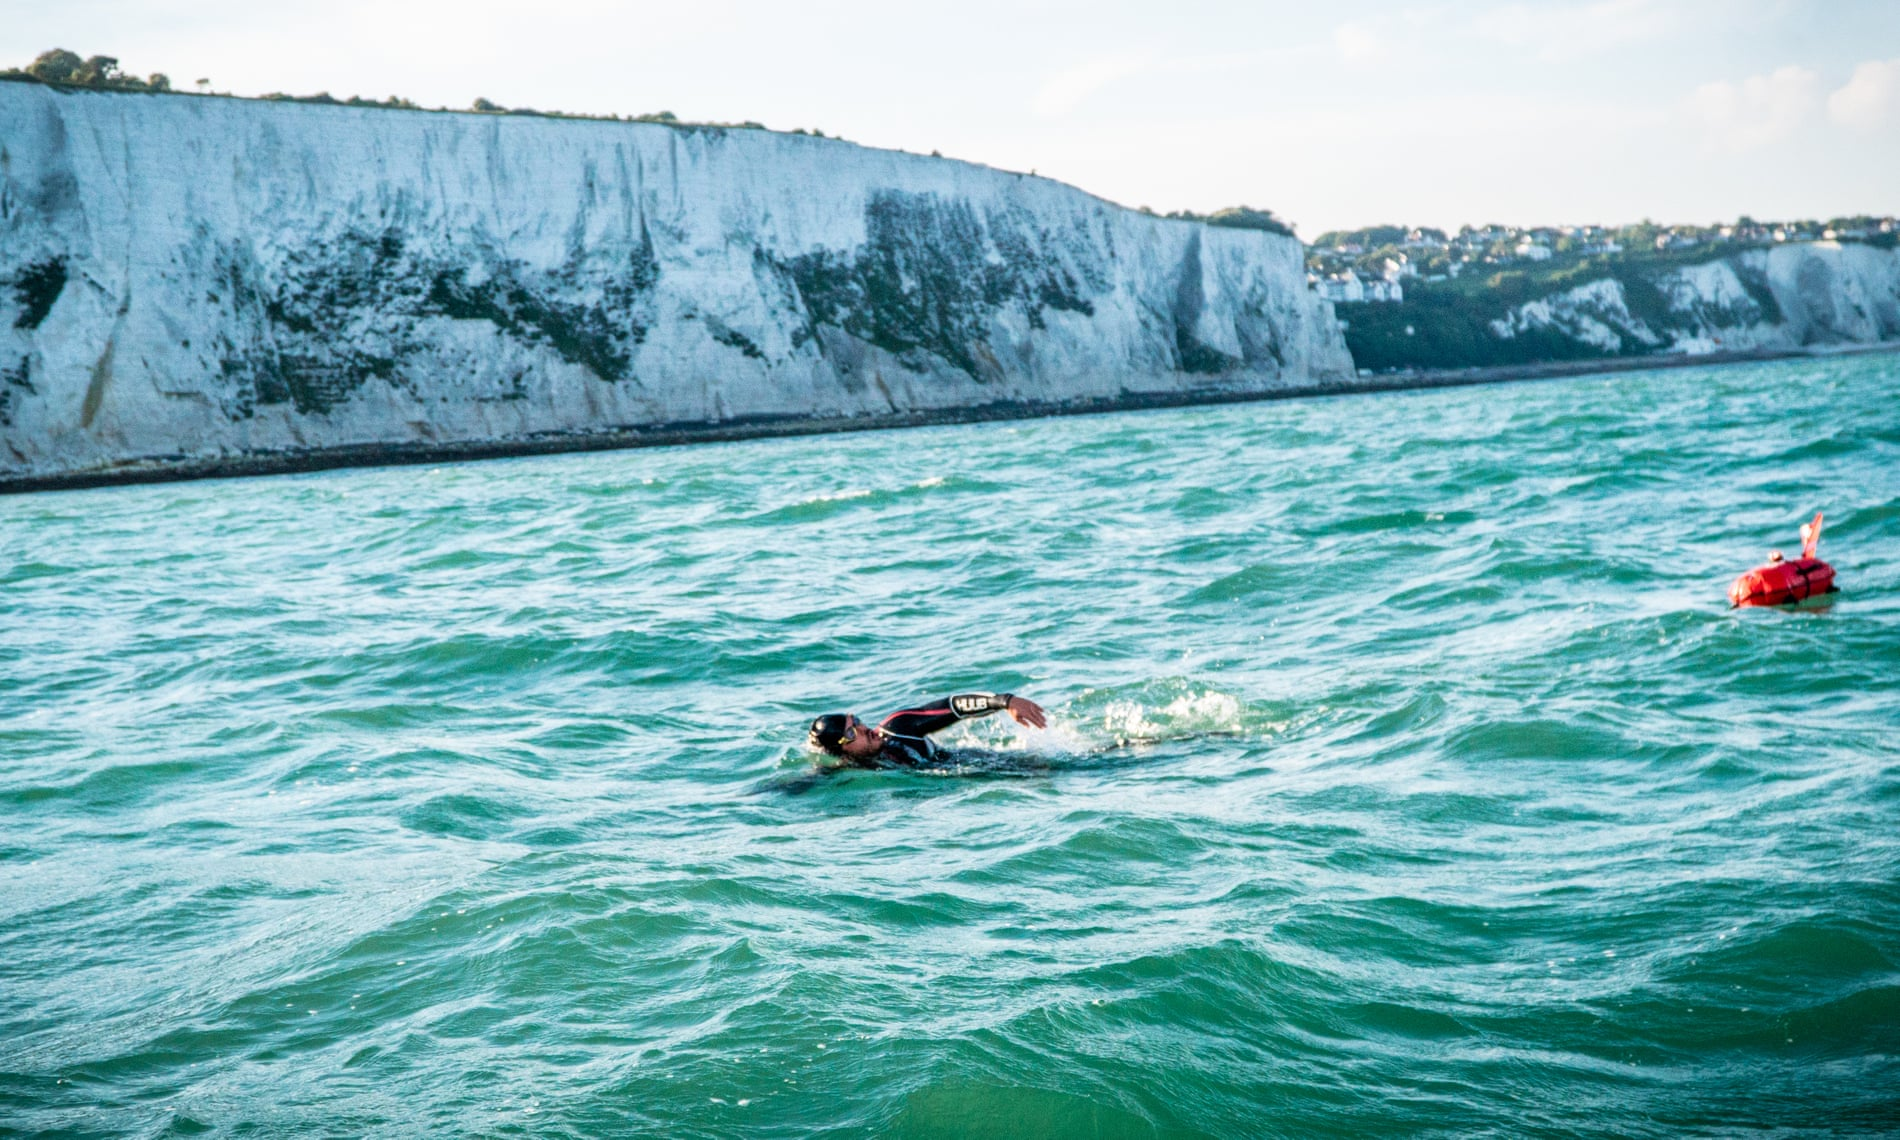 'Chunks of my tongue came off – you could see my taste buds' - Ross Edgley survived raw wounds and jellyfish stings to complete the record-breaking feat of swimming around Great Britain. Is he a masochist?